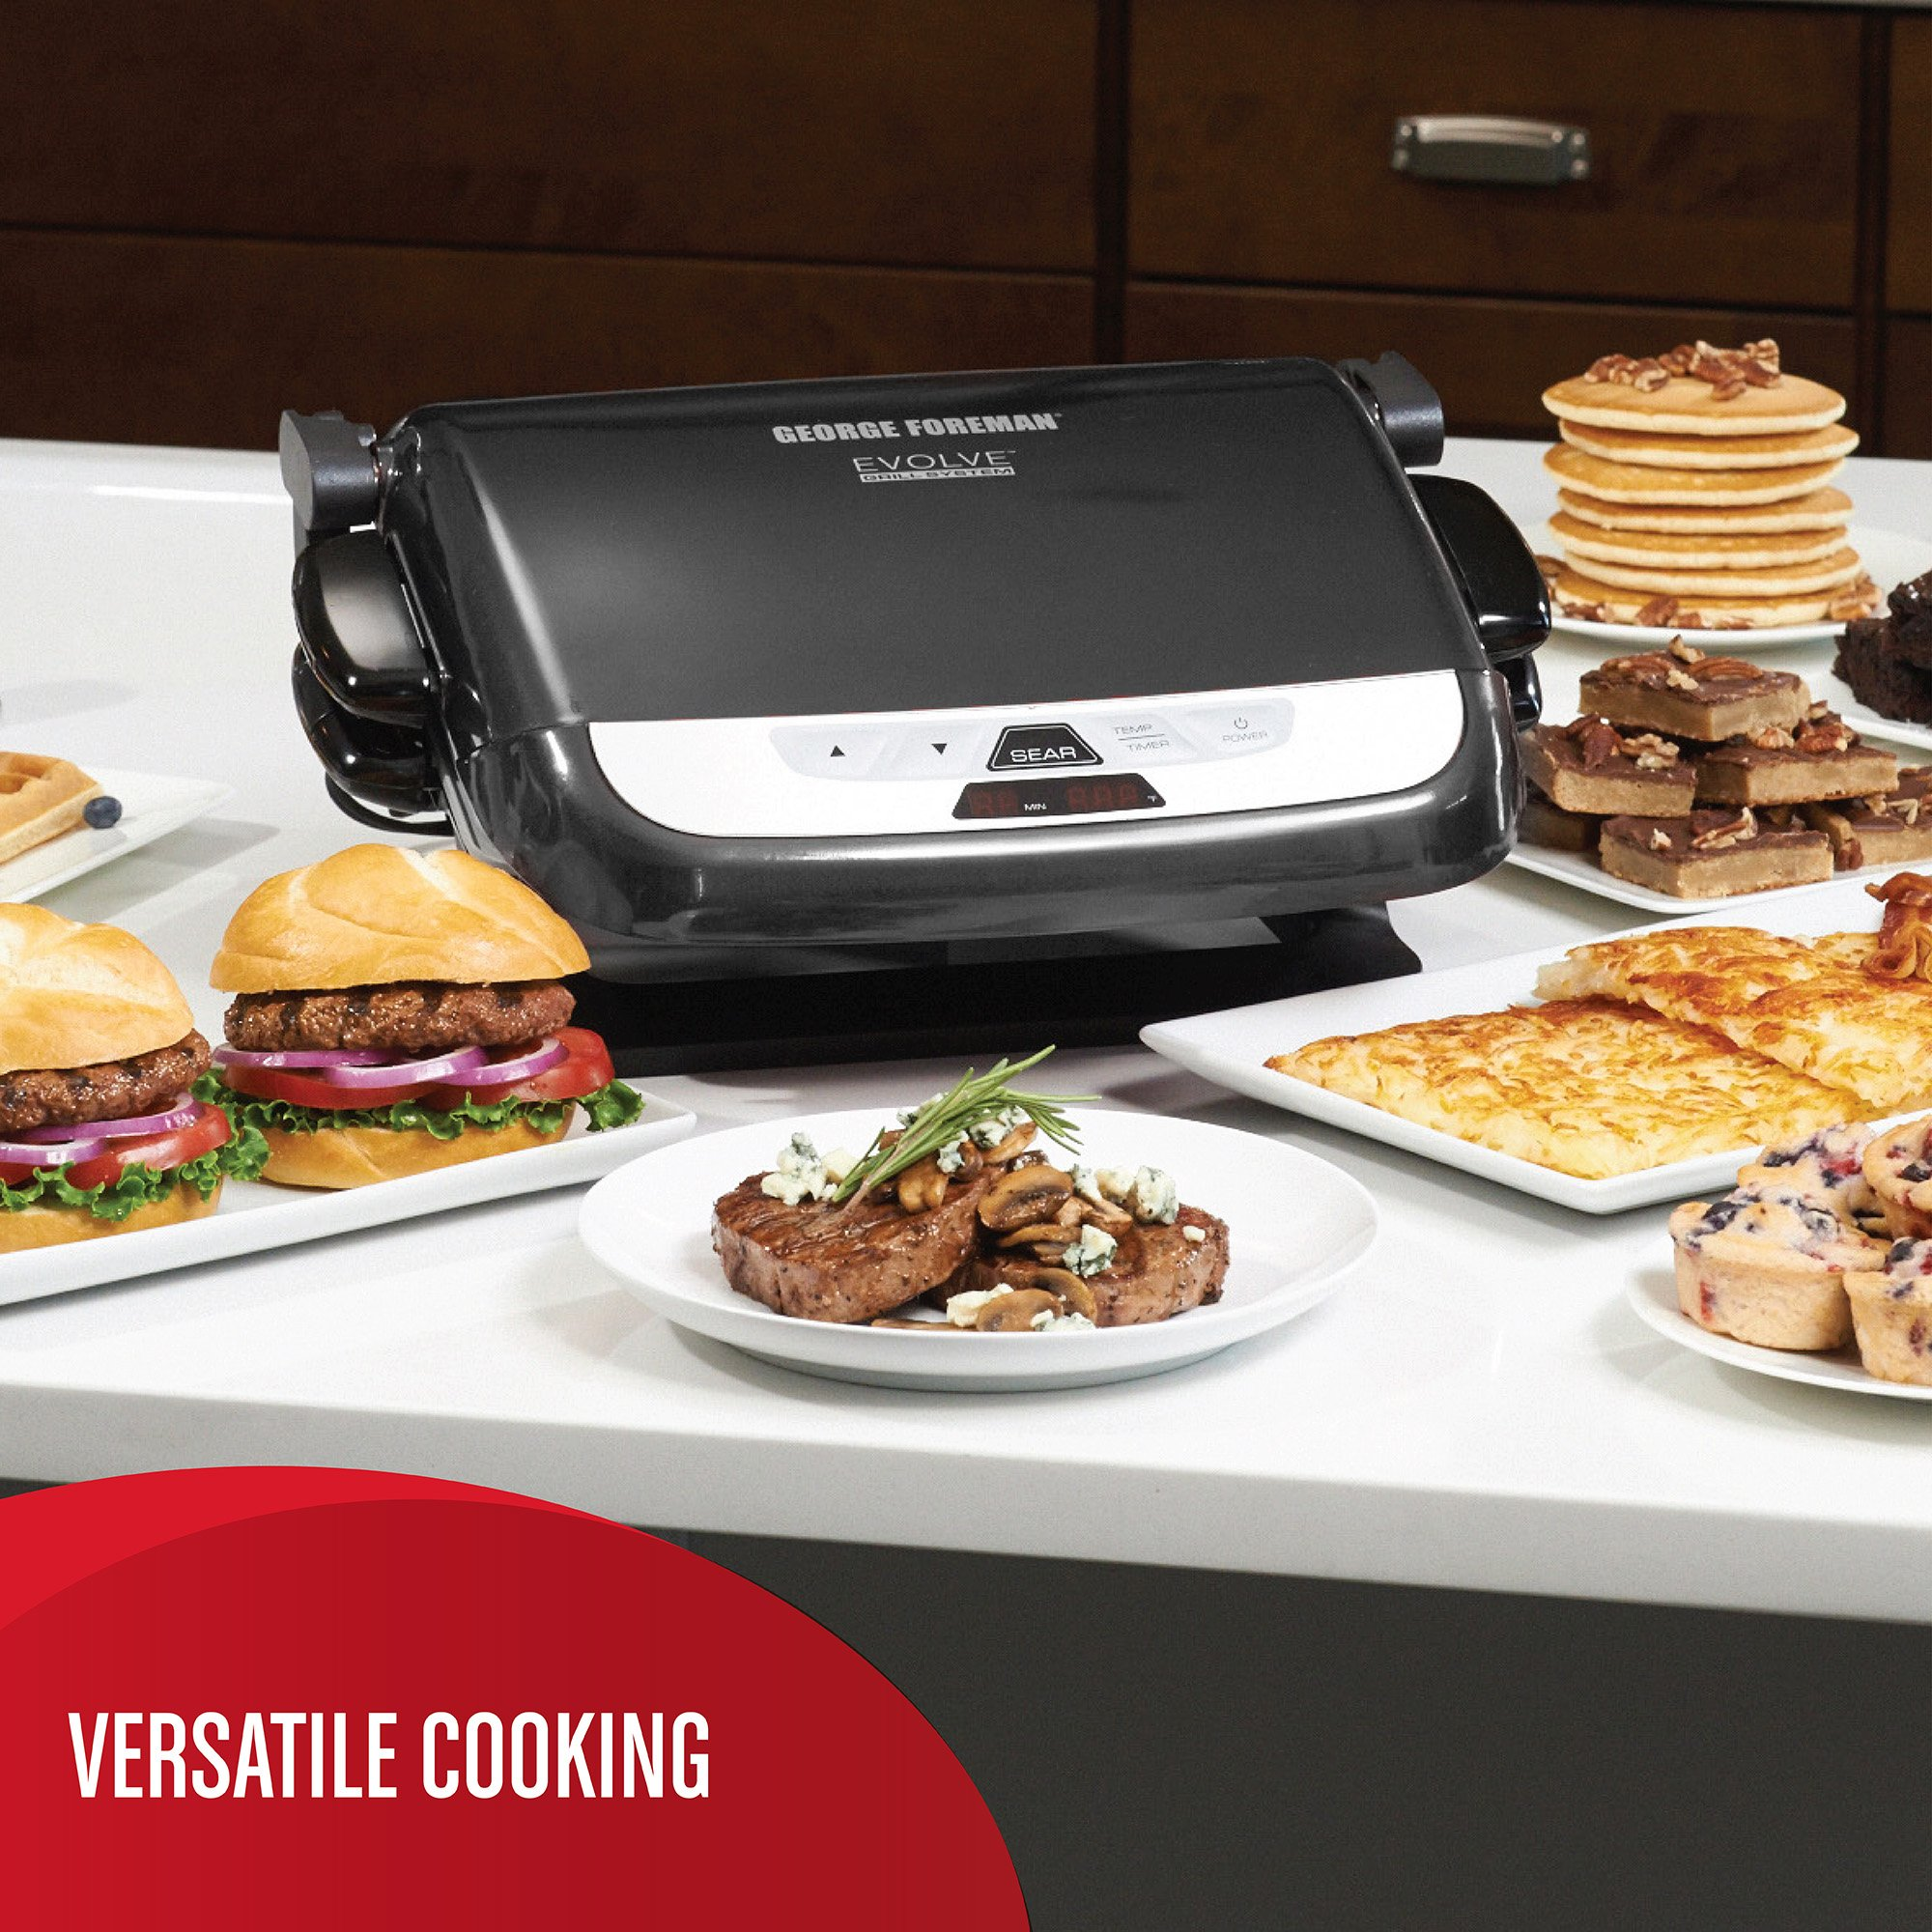 George Foreman GRP4842MB Multi-Plate Evolve Grill, (Ceramic Grilling Plates, and Waffle Plates Included), Black by George Foreman (Image #4)